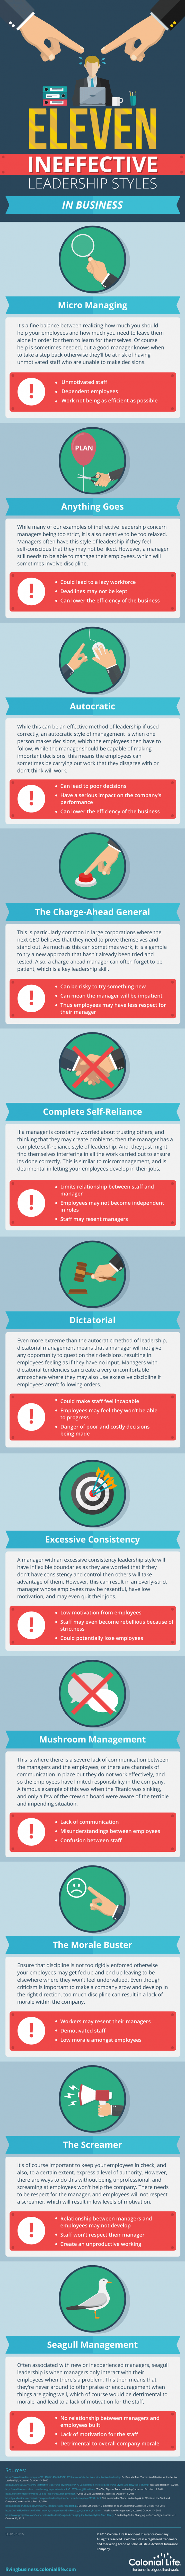 Infographic - 11 Ineffective Leadership Styles Developing Leaders Should Avoid